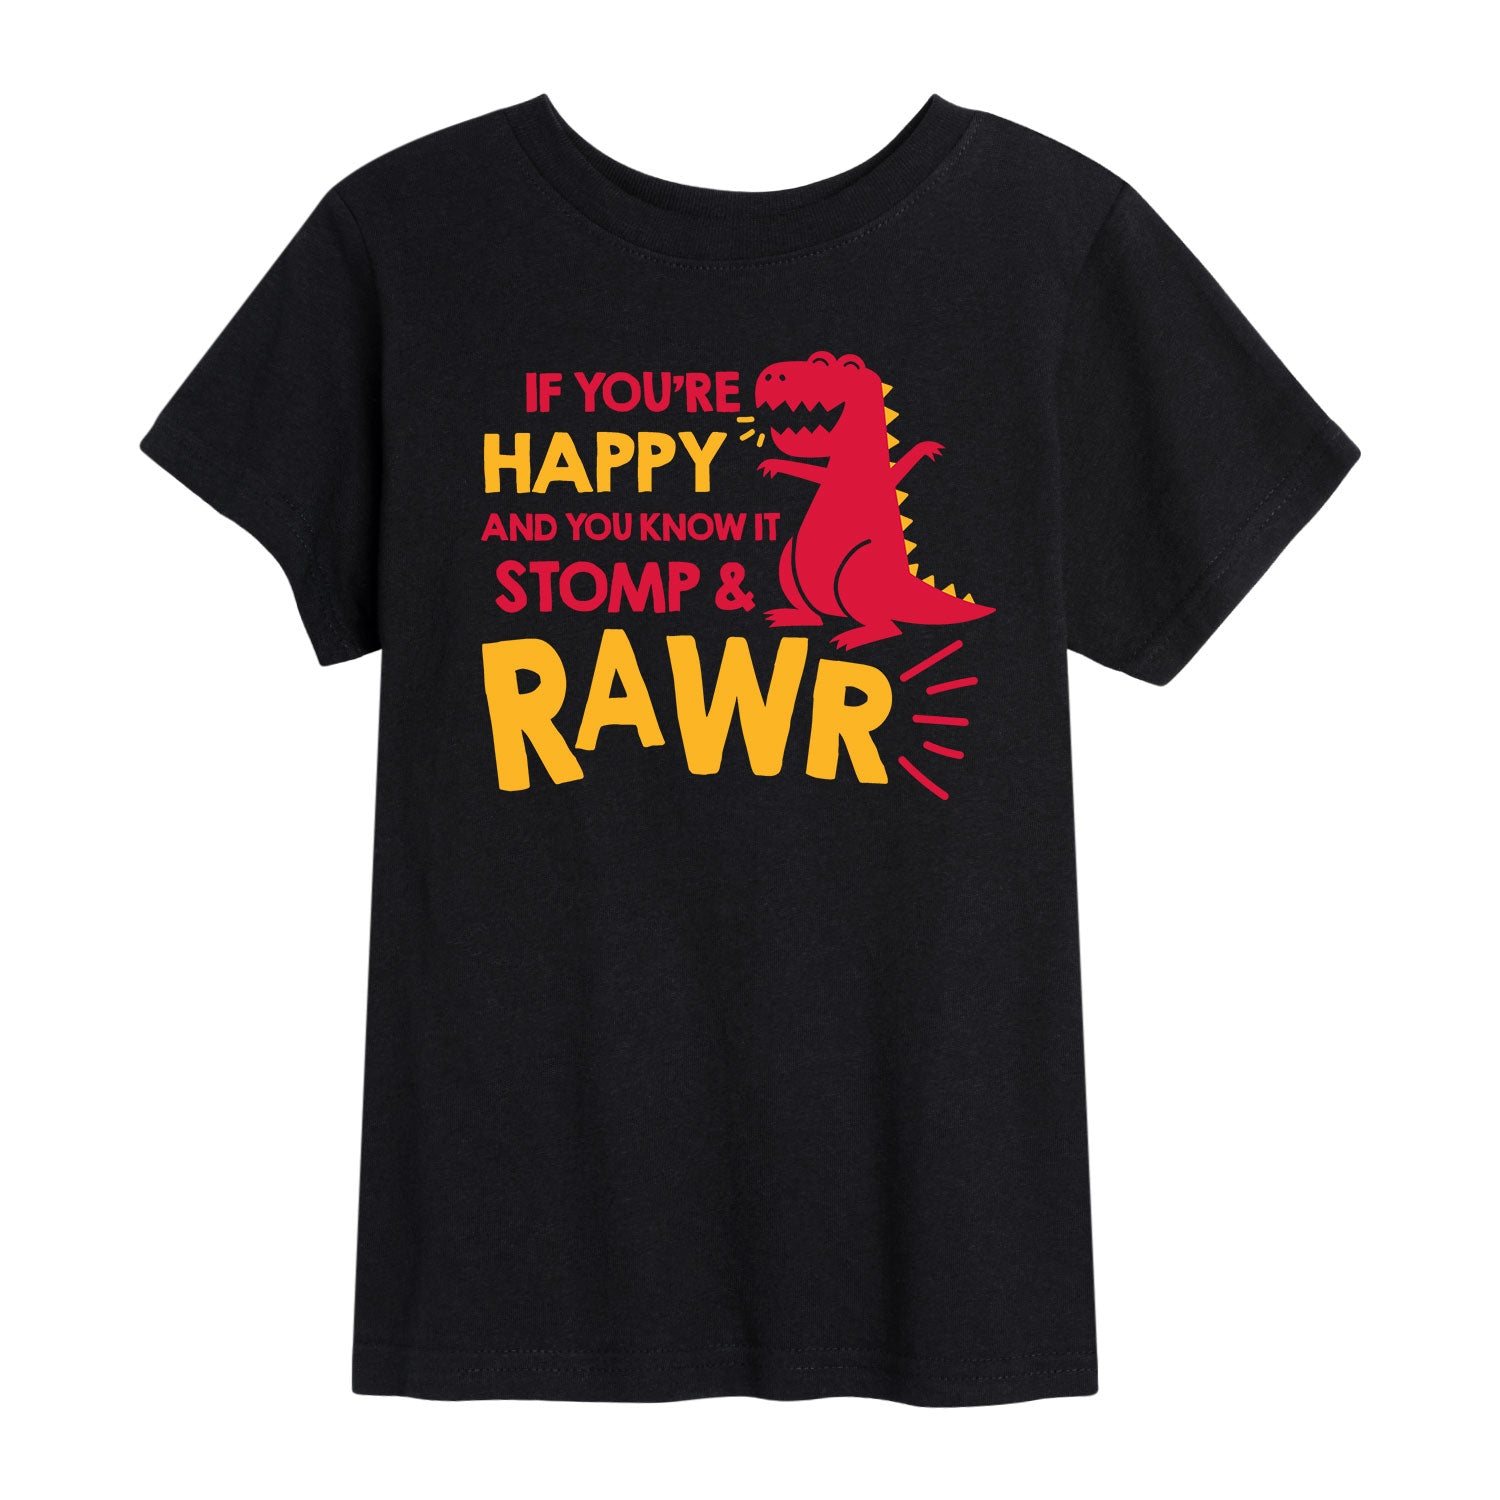 Stomp And Rawr - Toddler Short Sleeve T-Shirt